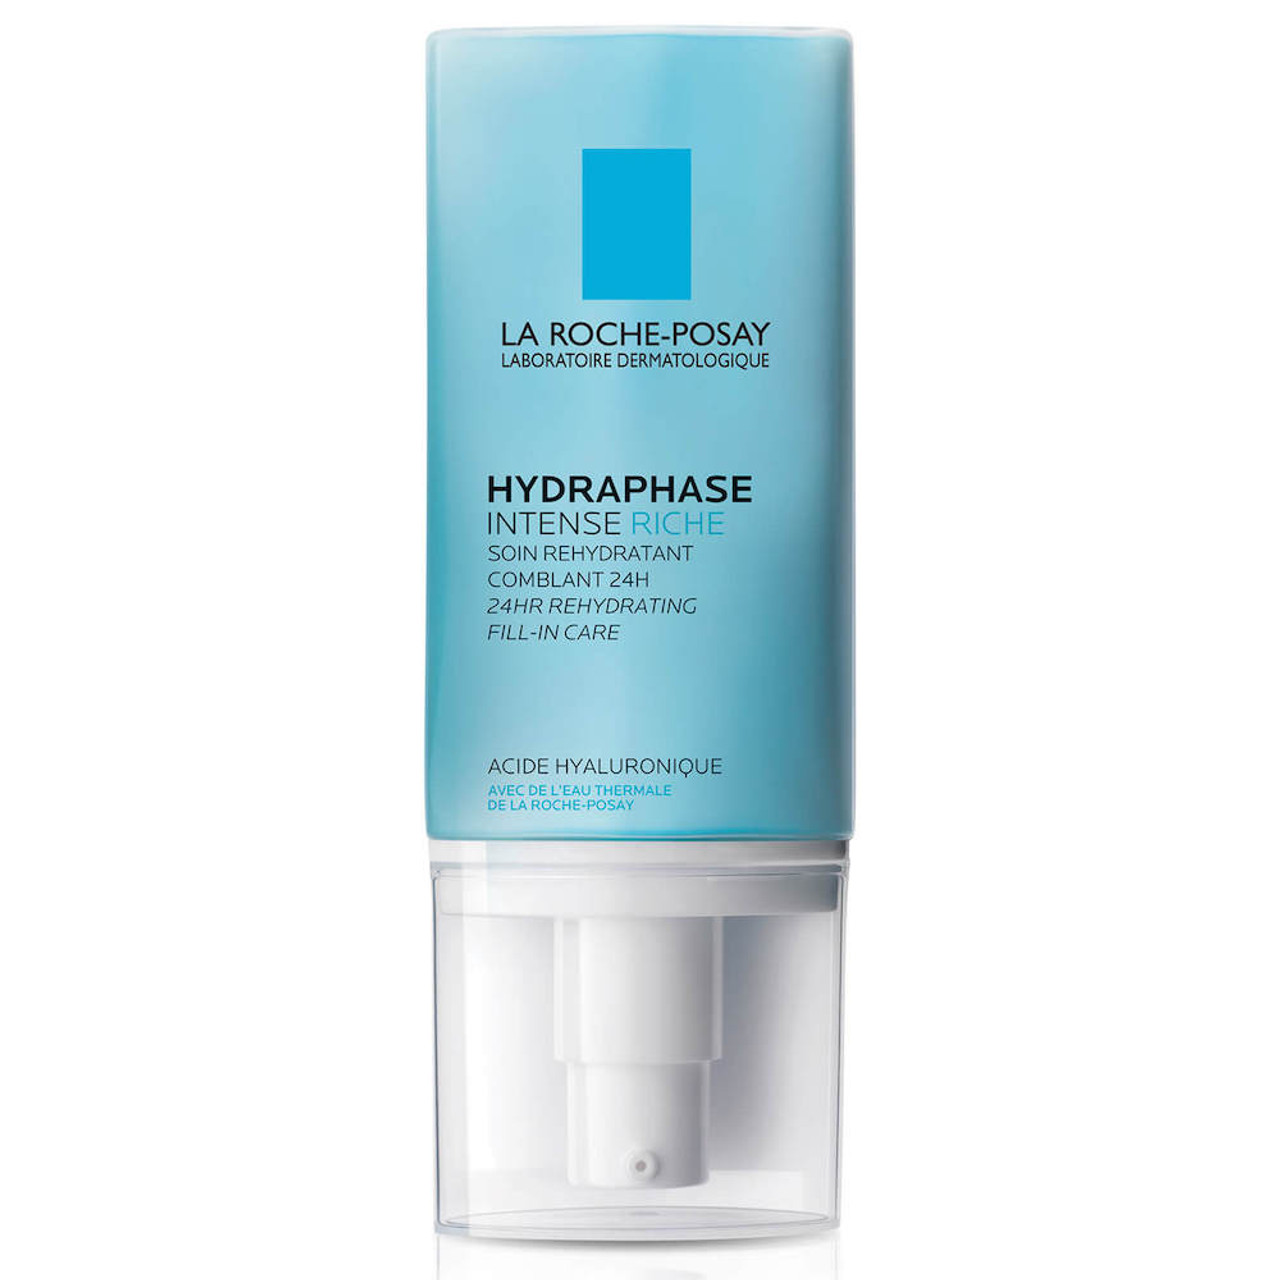 La Roche Posay Hydraphase Intense Riche Hyaluronic Acid Cream